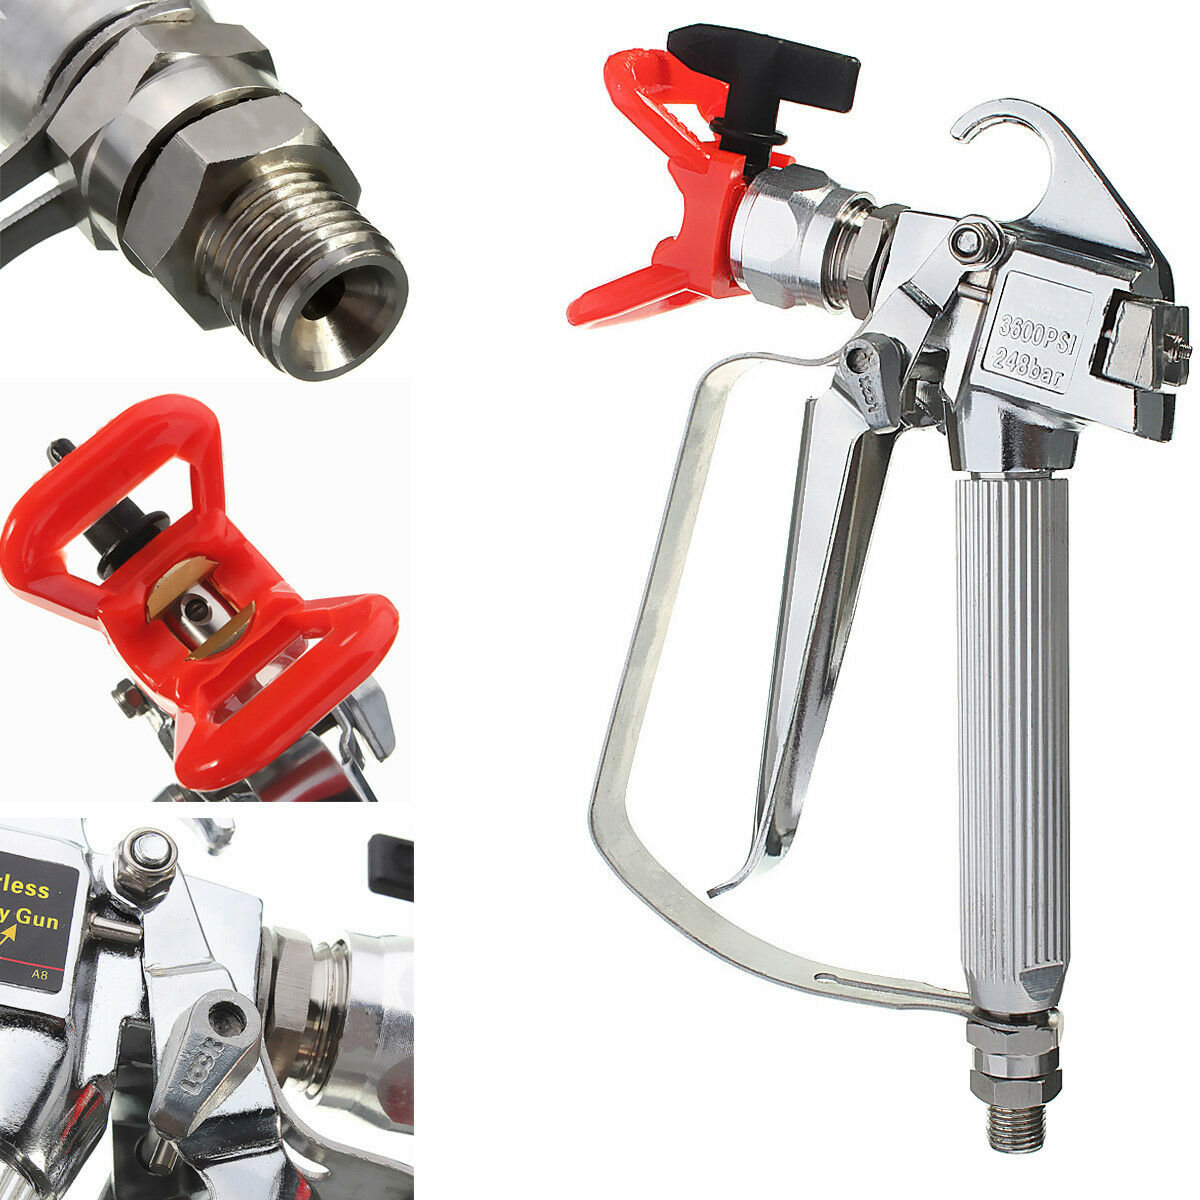 Airless paint spray gun 3600psi tip tip guard for graco for Spray gun for oil based paints